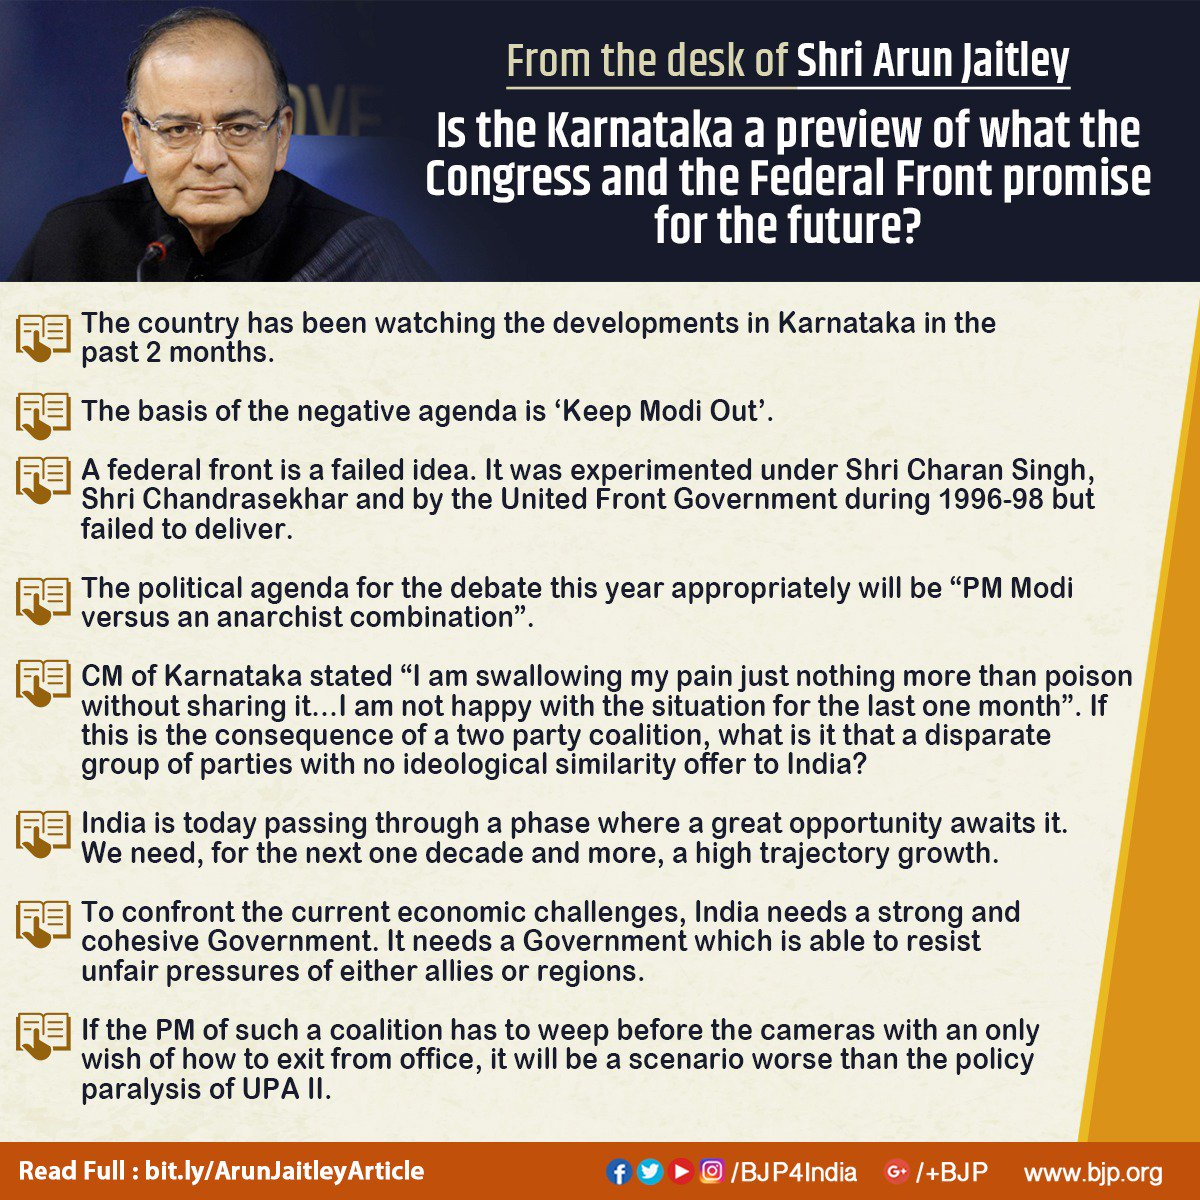 Is the Karnataka a preview of what the Congress and Federal Front promise for the future? Read Shri @arunjaitley's full article at https://t.co/A2gwyQYsg5